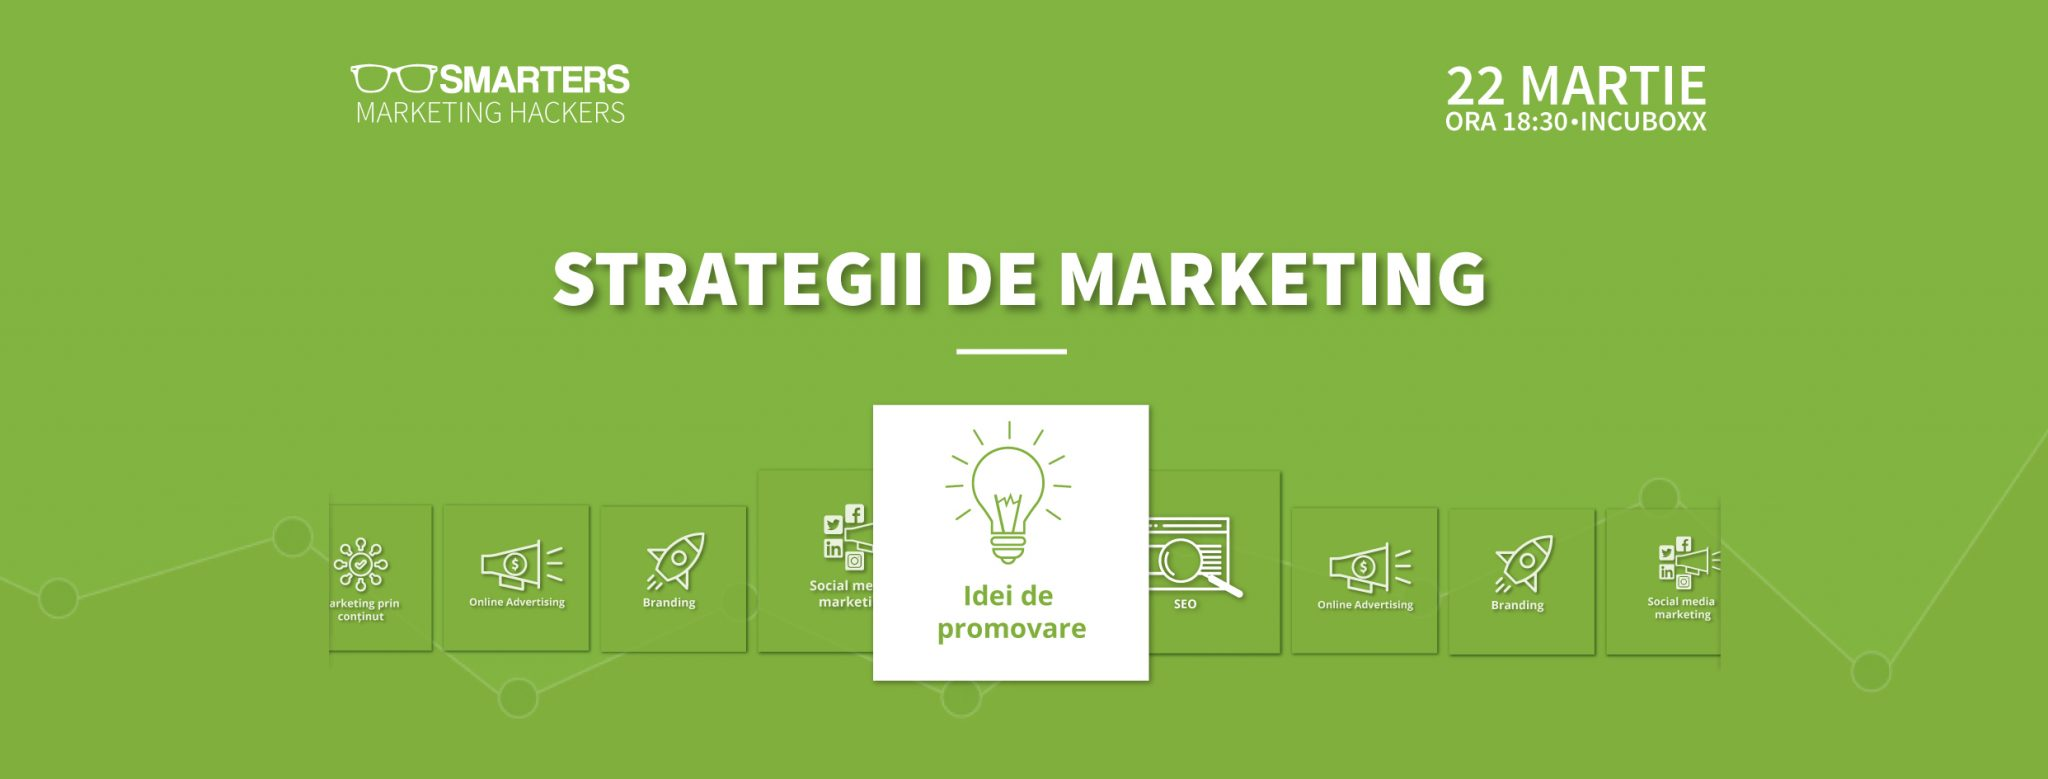 Marketing Hackers - Exemplu de eveniment ca metoda de promovare